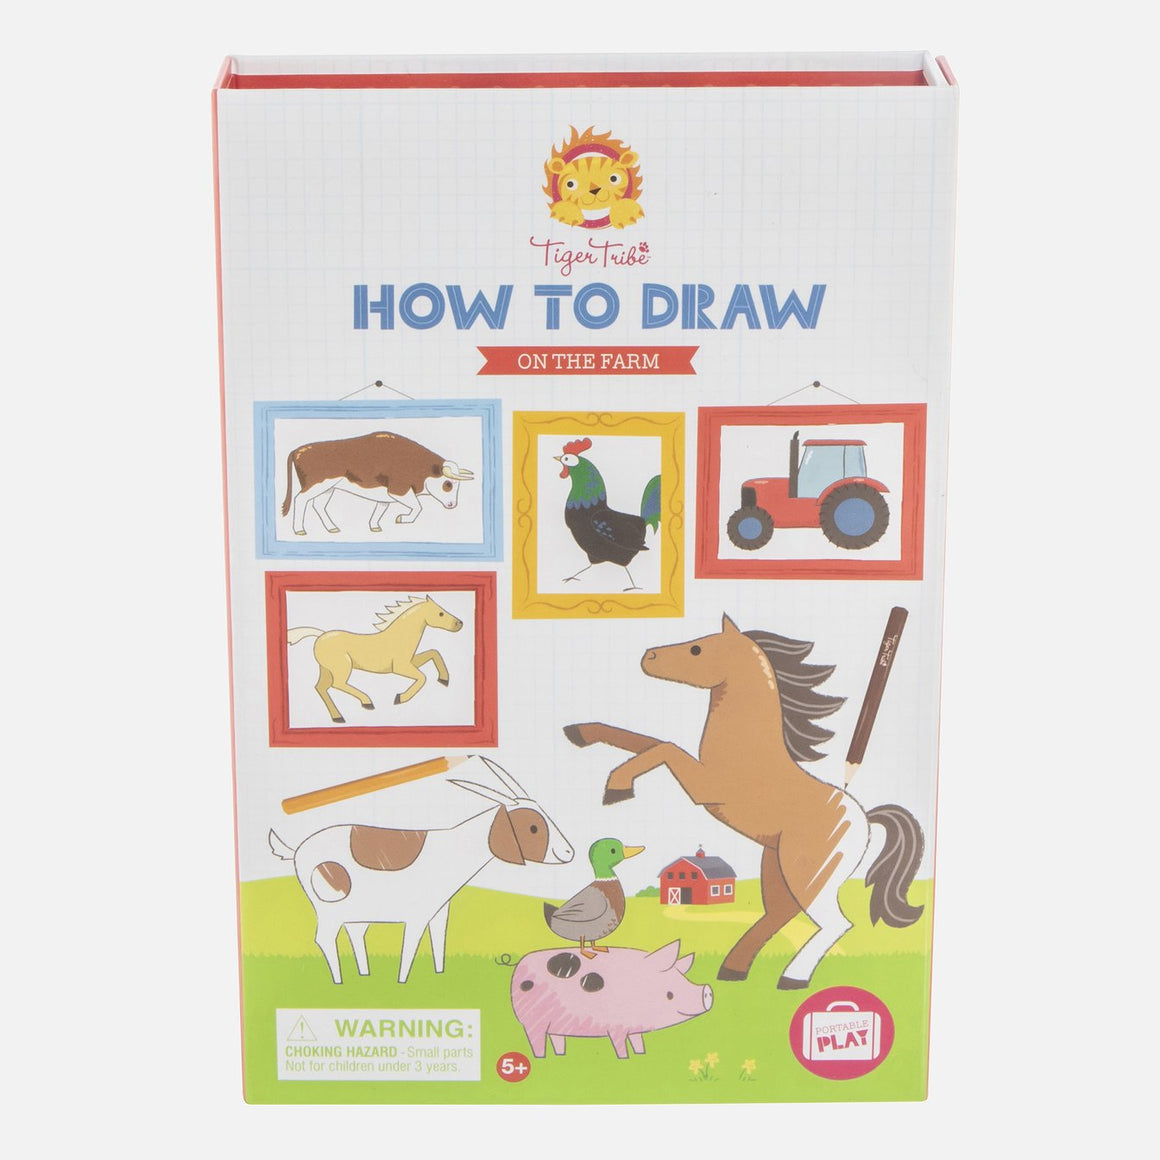 How to draw on the farm